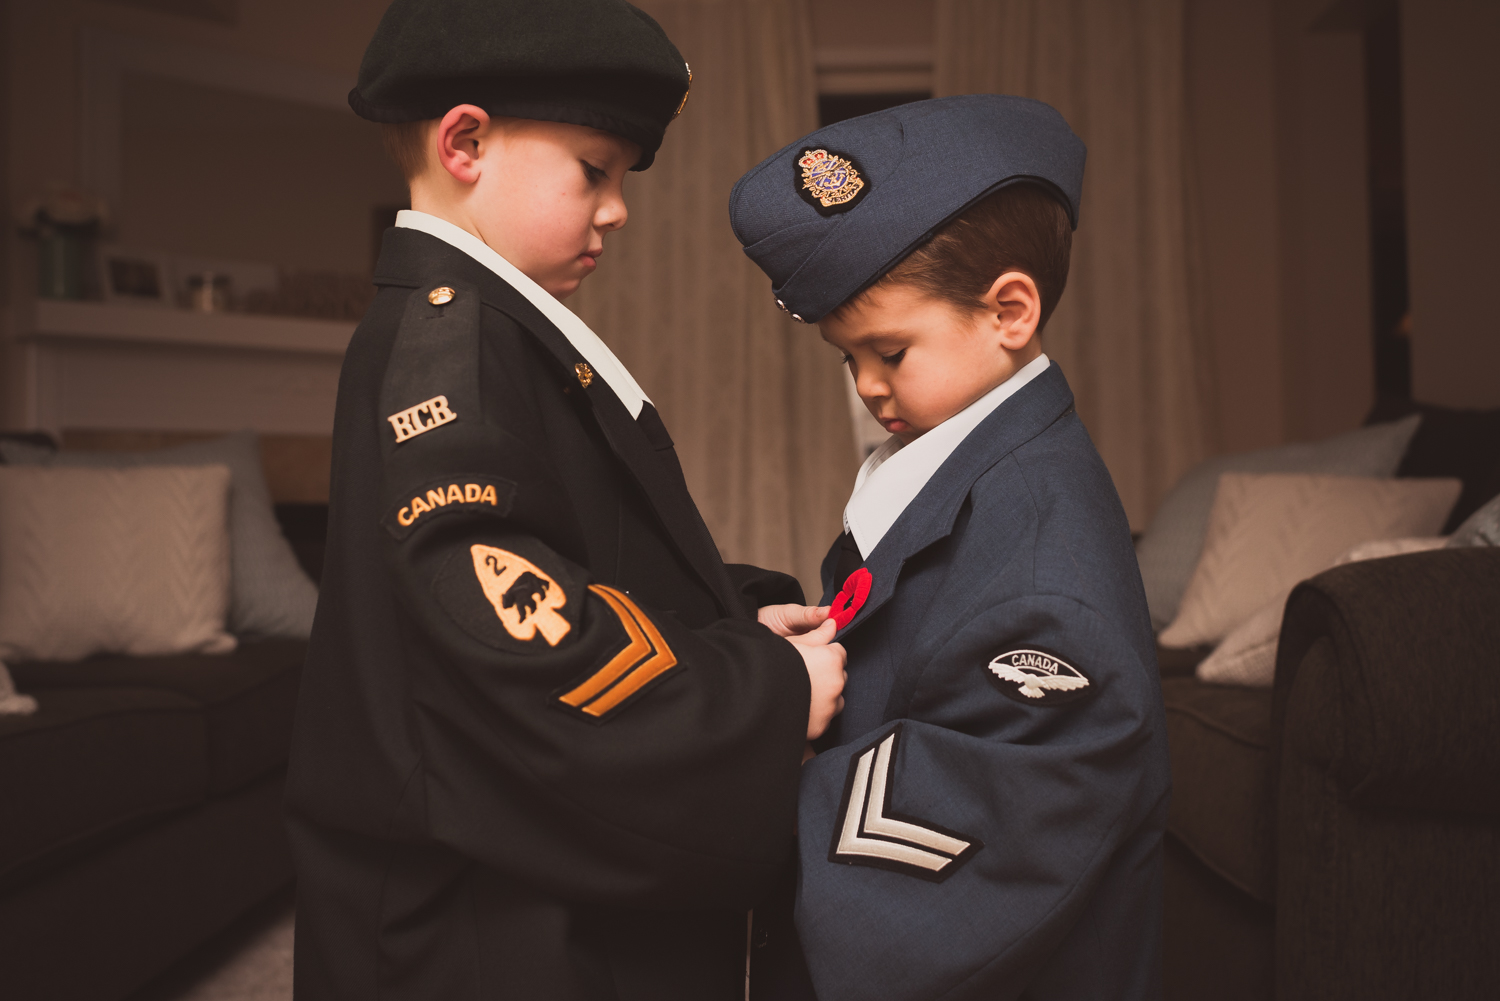 Two brothers dressed in military uniforms.